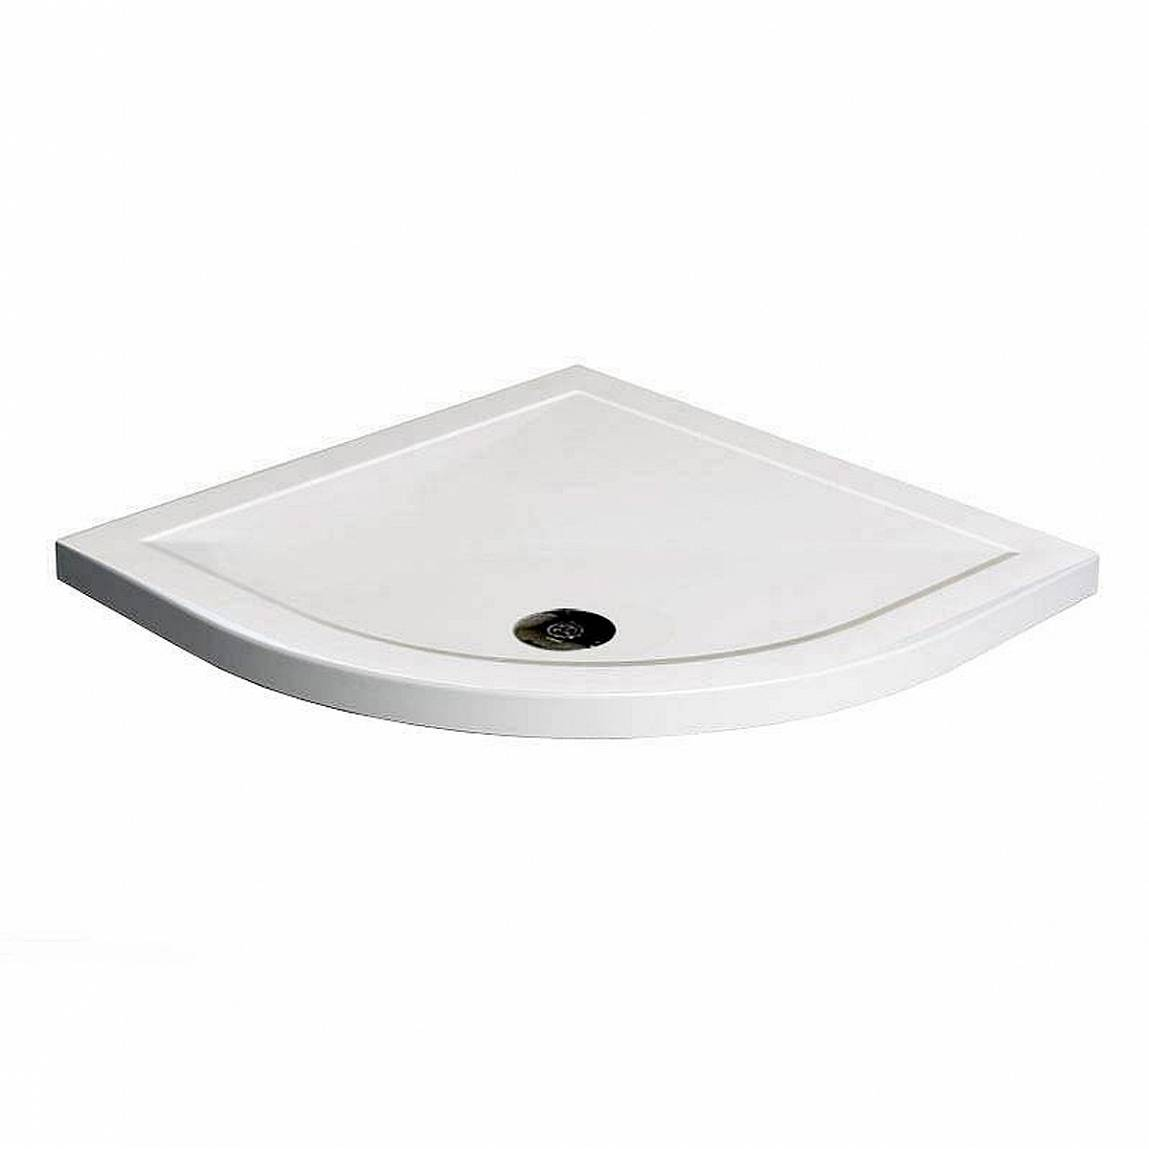 Image of Quadrant Stone Shower Tray 900 x 900